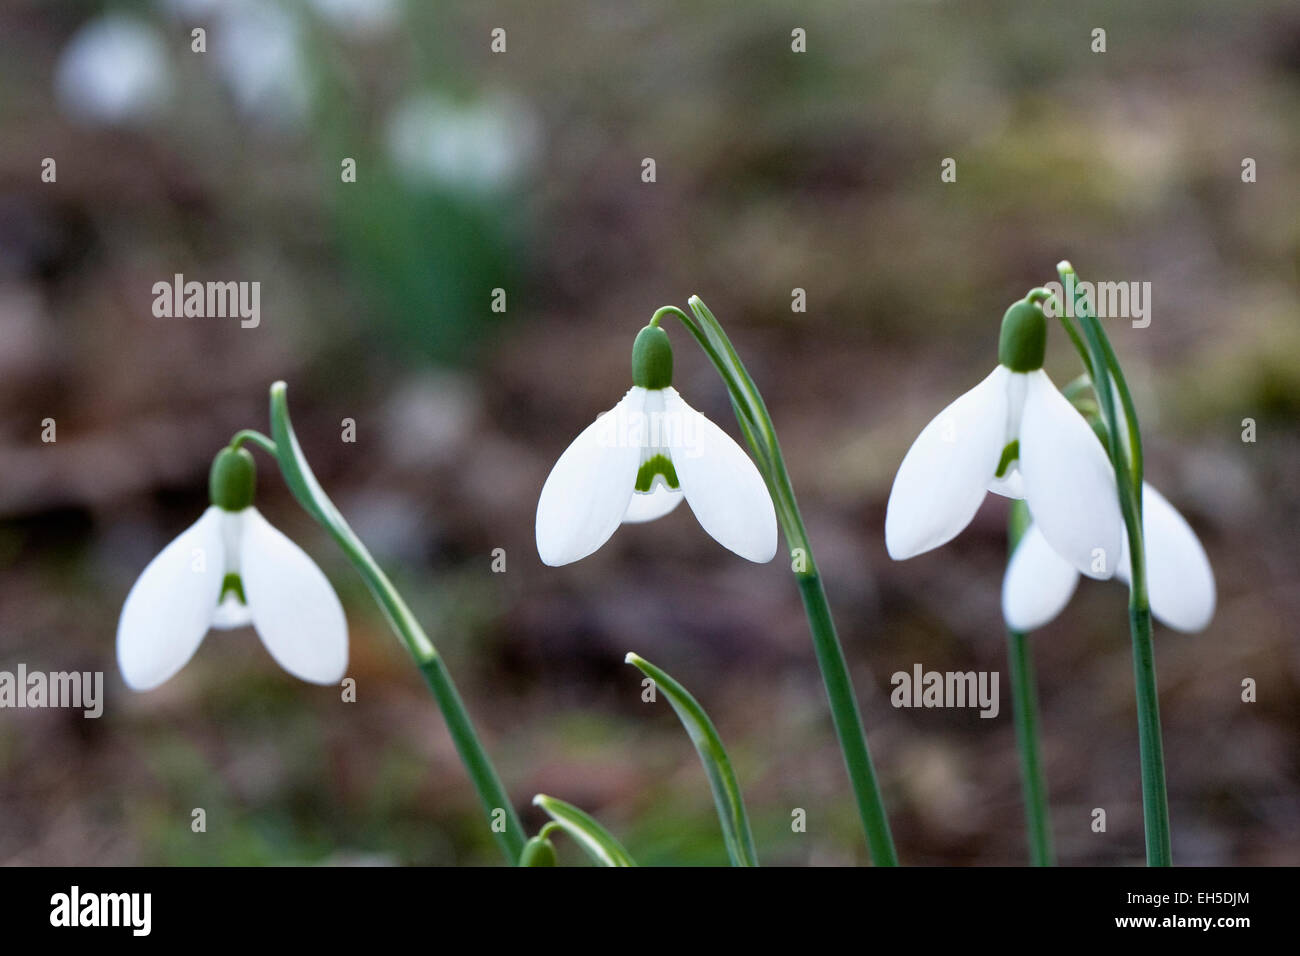 Galanthus Brenda Troyle. Snowdrops growing on the edge of a woodland garden. - Stock Image